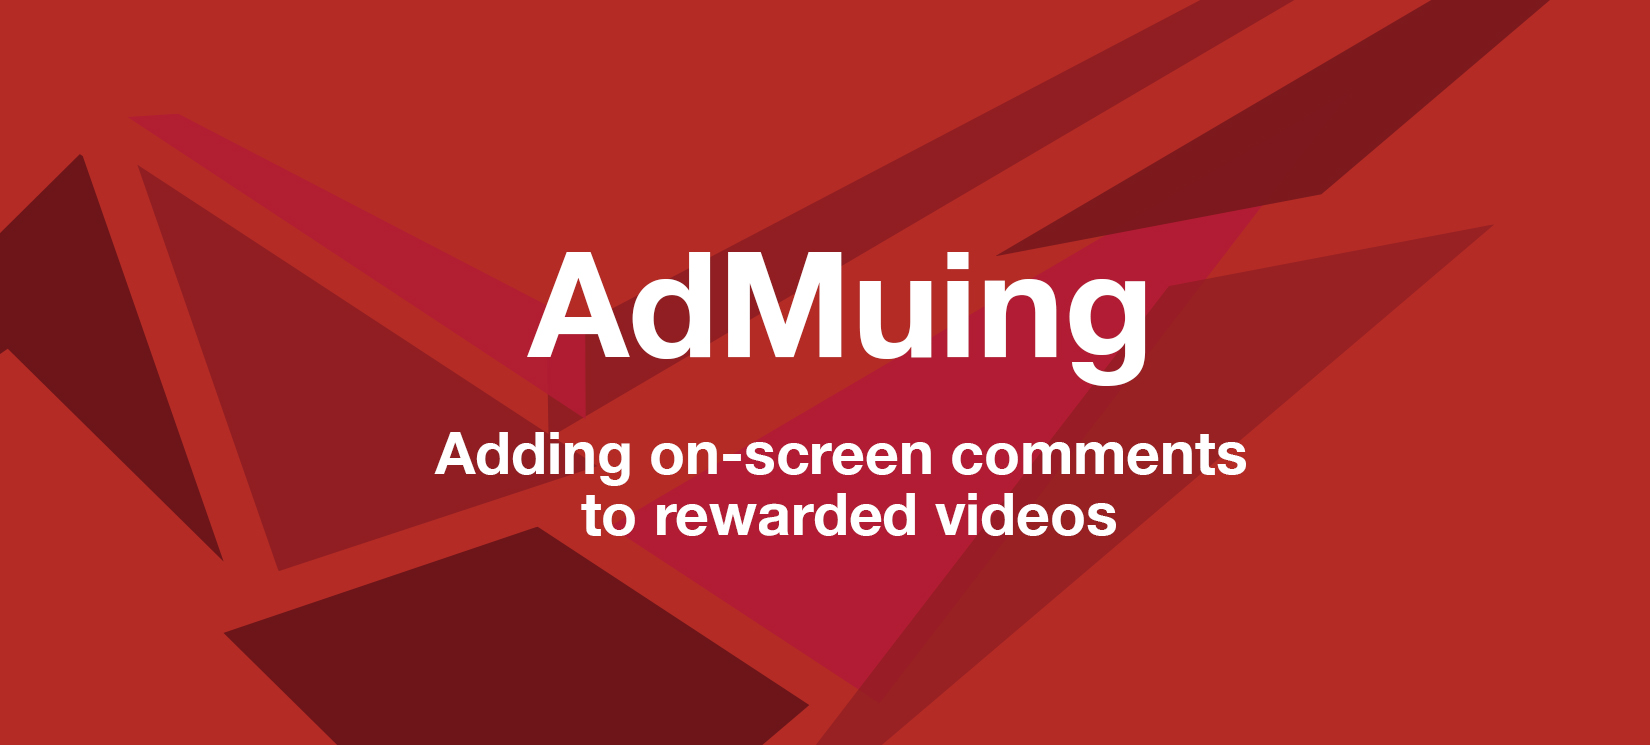 AdMuing Rewarded Video Comments